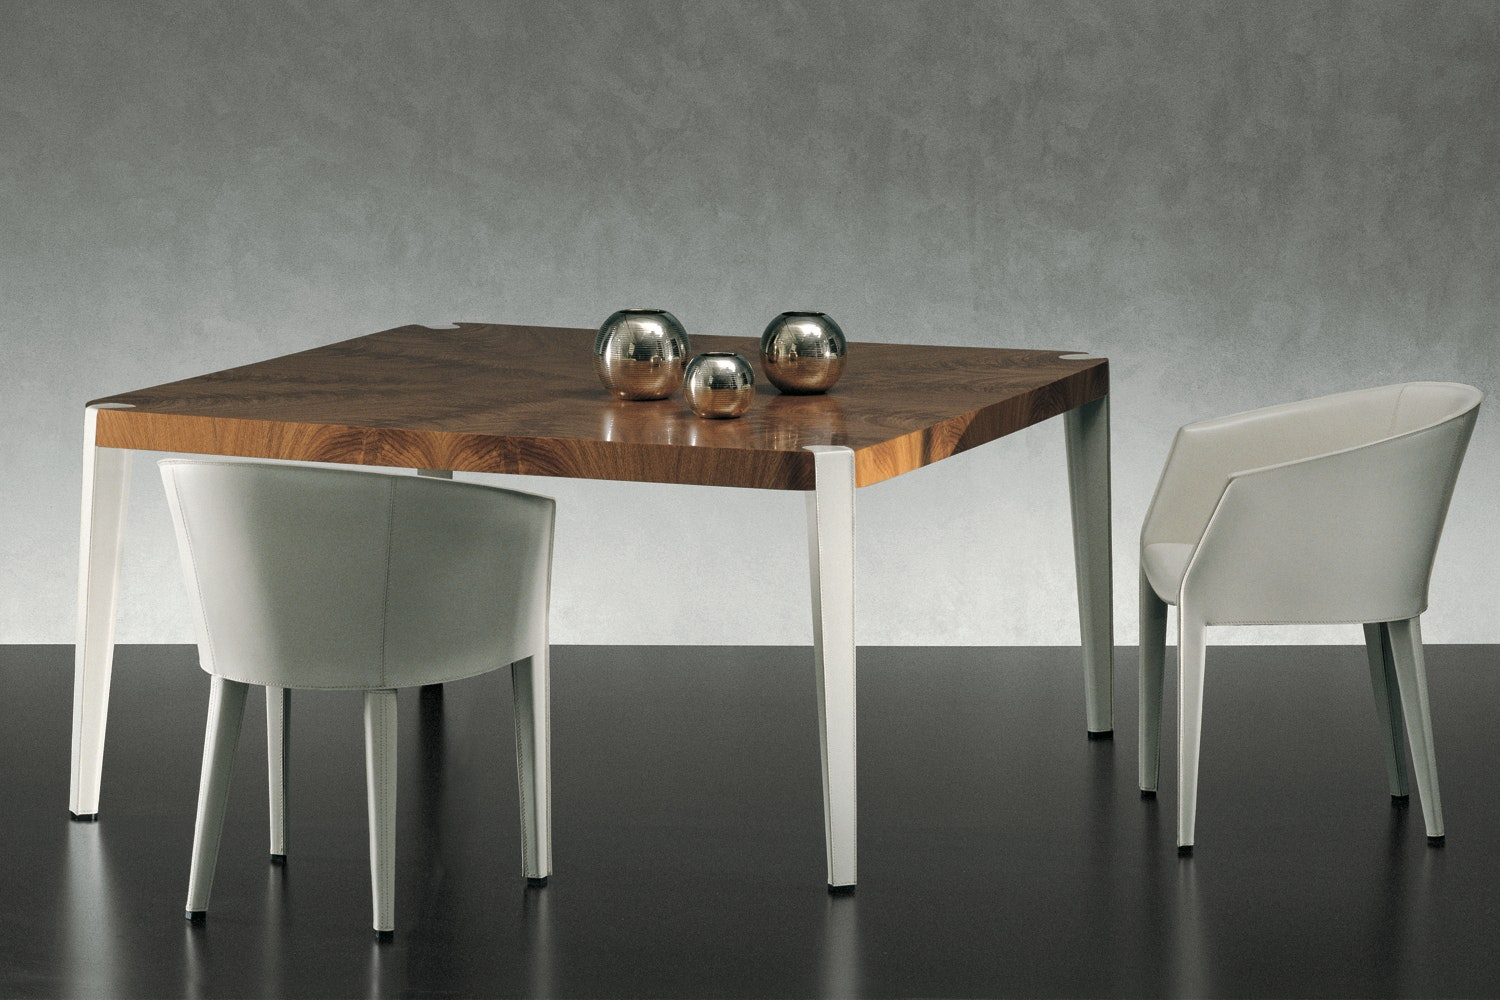 Victor Table by Antonello Mosca for Giorgetti